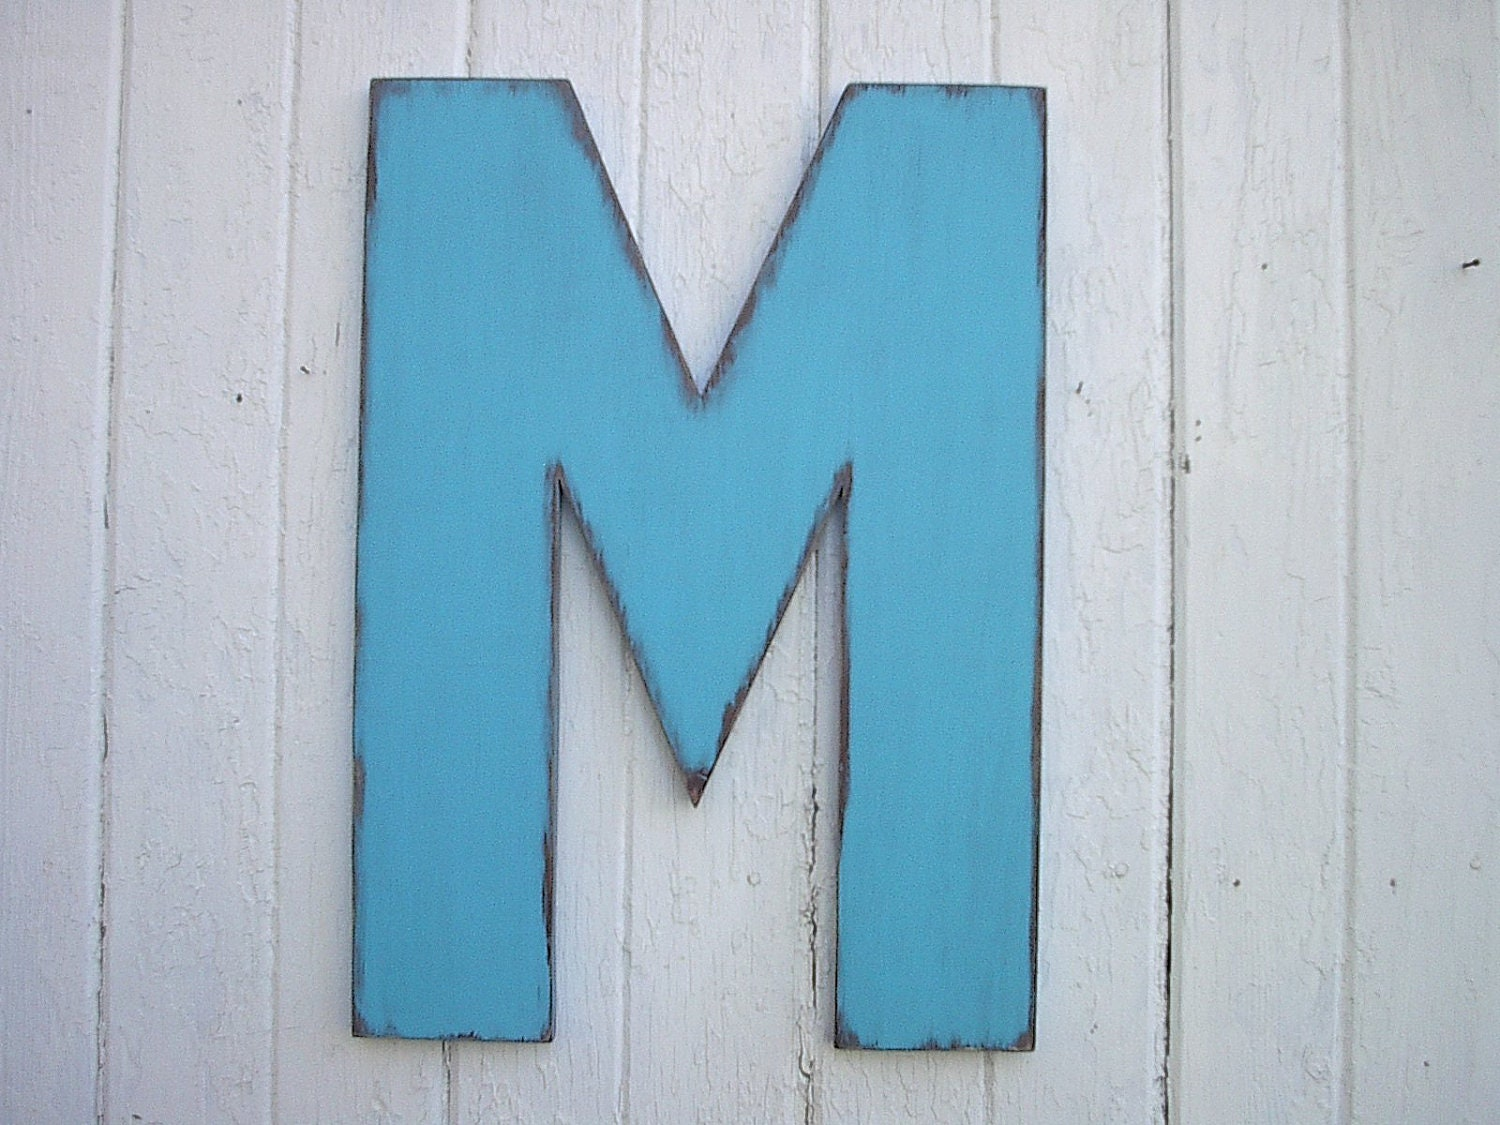 wooden letters m 24 blue shabby chic rustic wall art decor cabin distressed sign housewares wedding gifts vintage style look